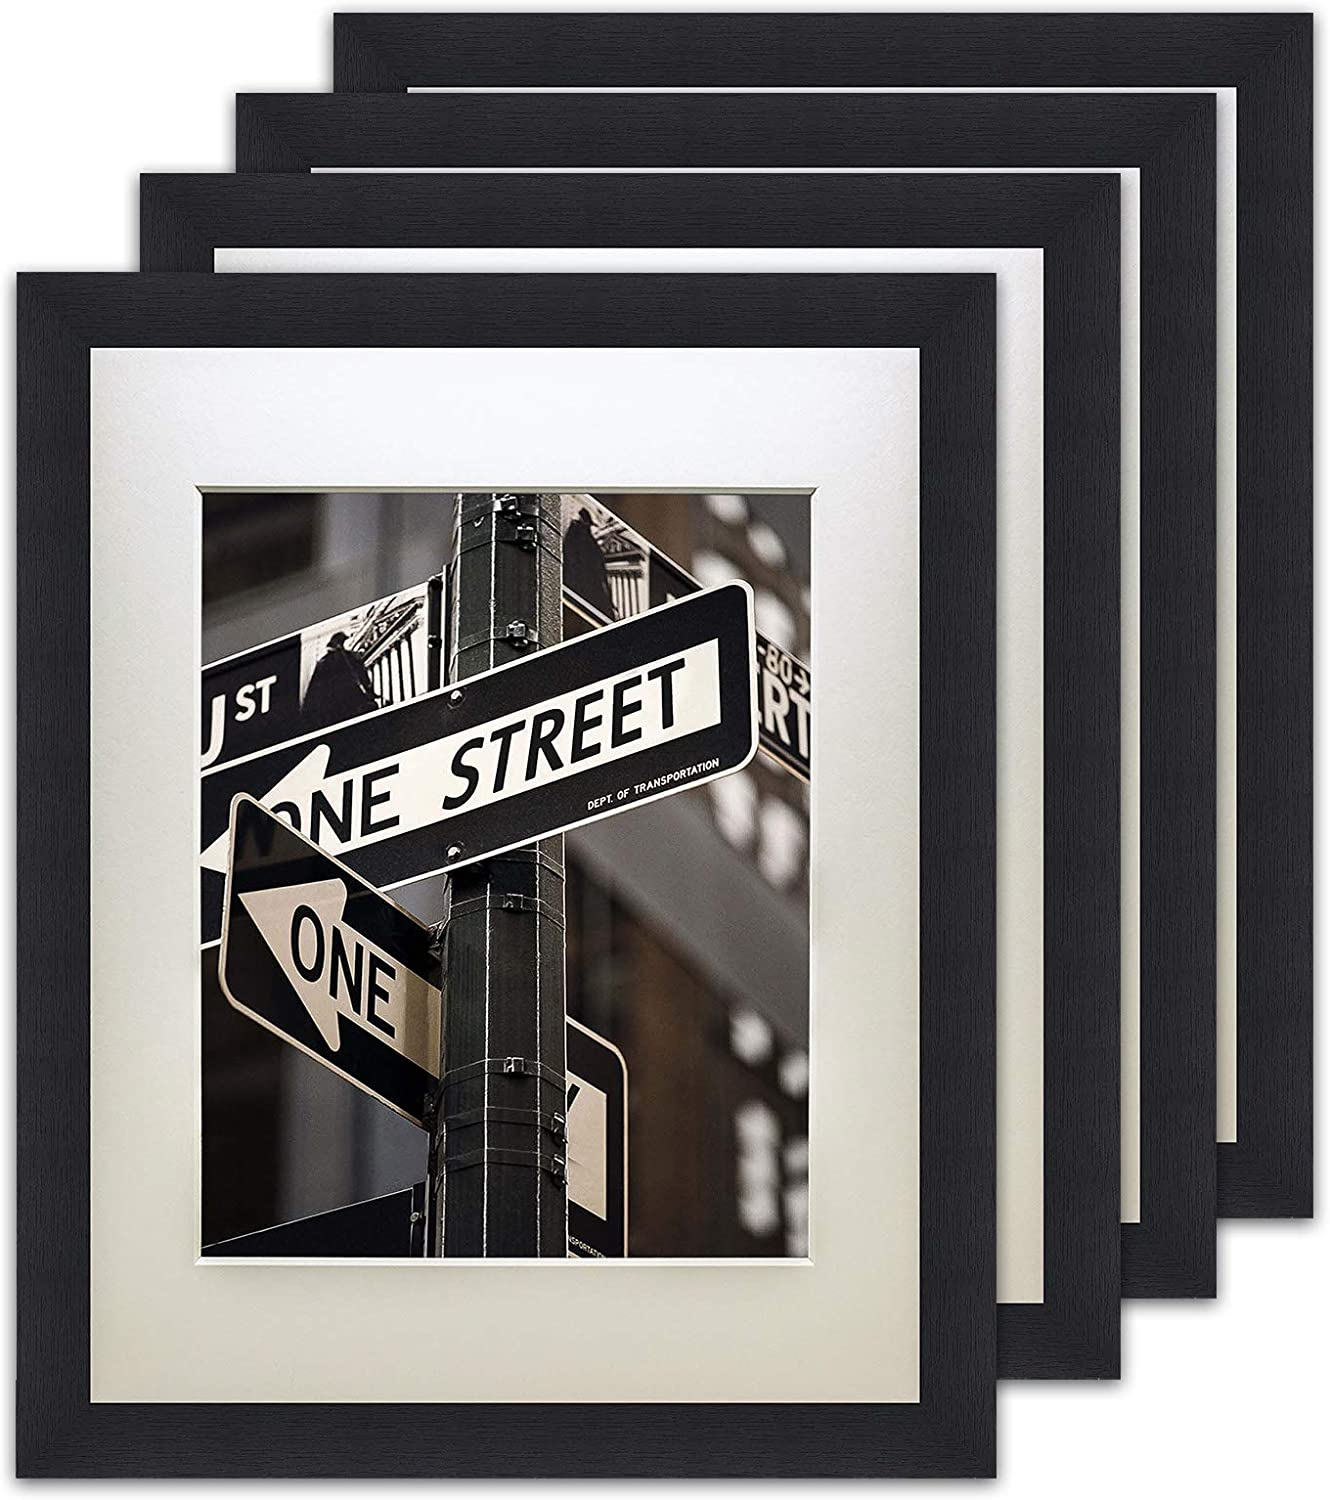 """The Display Guys – Square Profile Picture Frame – Solid Black Wood with Tempered Glass and Mat – Wall Mounted – Tabletop Display -18"""" x 24"""" - Set of 4"""